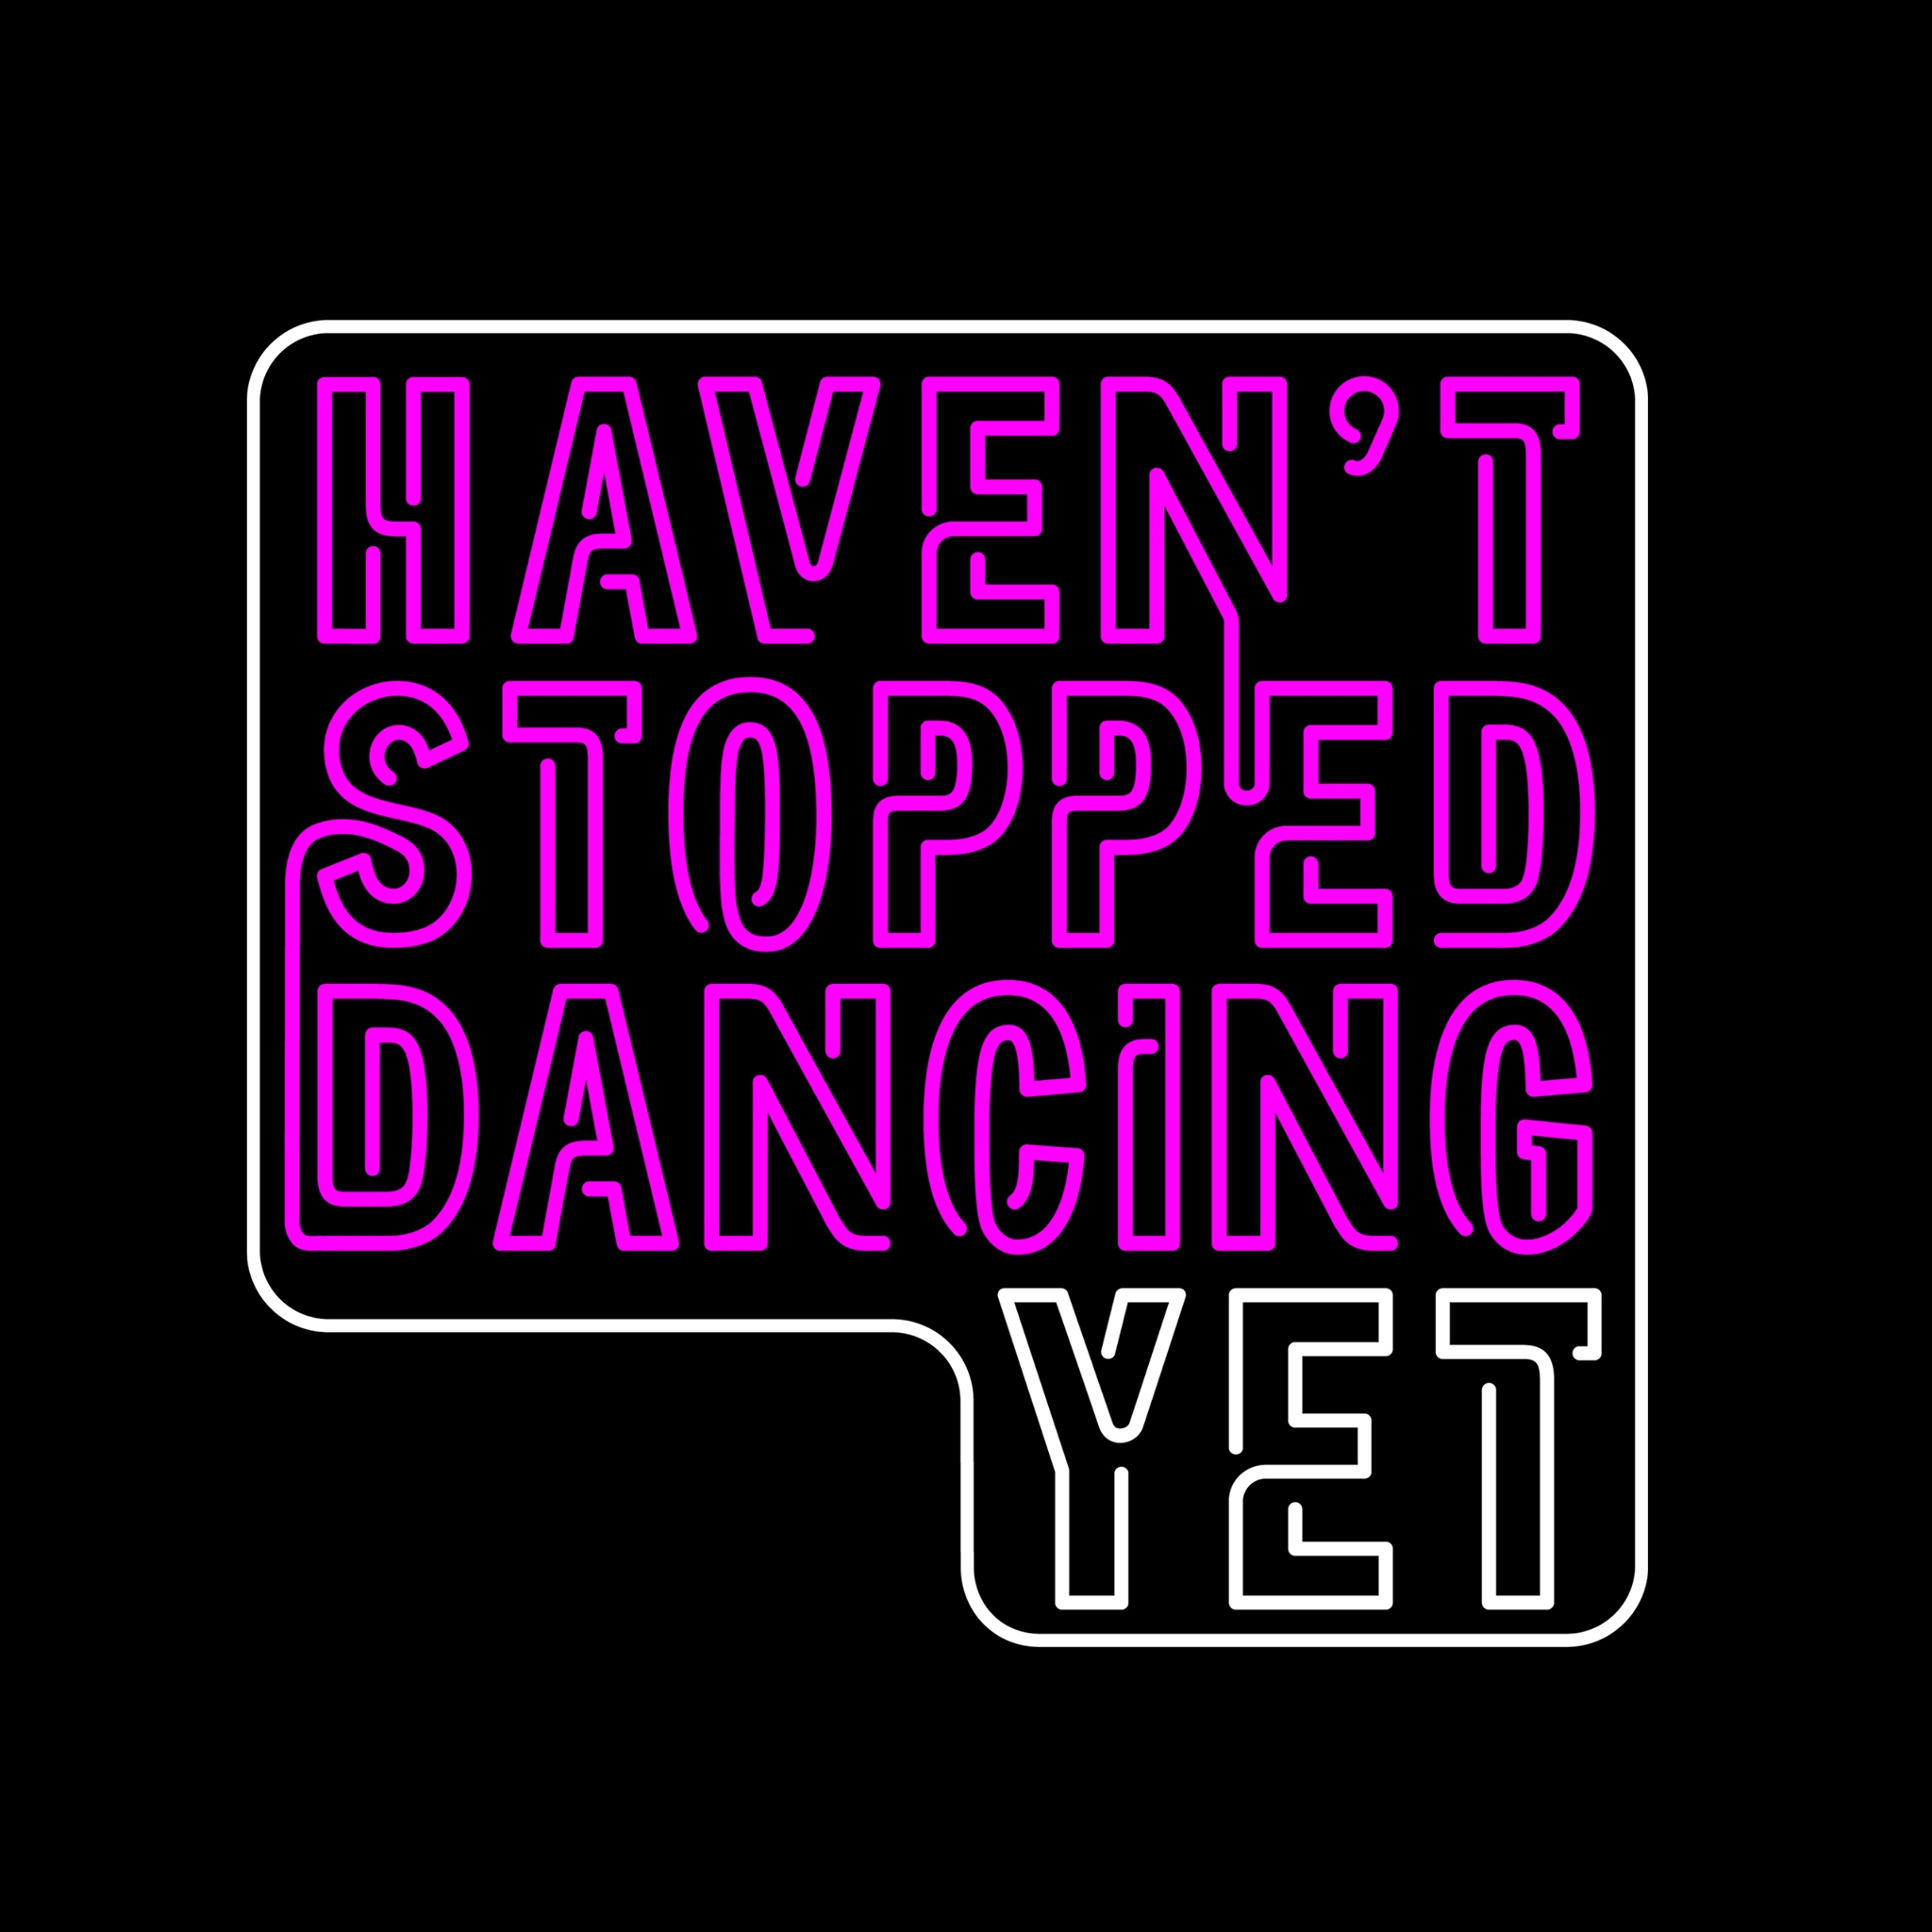 HAVEN'T STOPPED DANCING YET - BLACKHEATH - Saturday 7th December 2019Time: 730pm - 1030pmVenue: Blackheath Halls, Blackheath